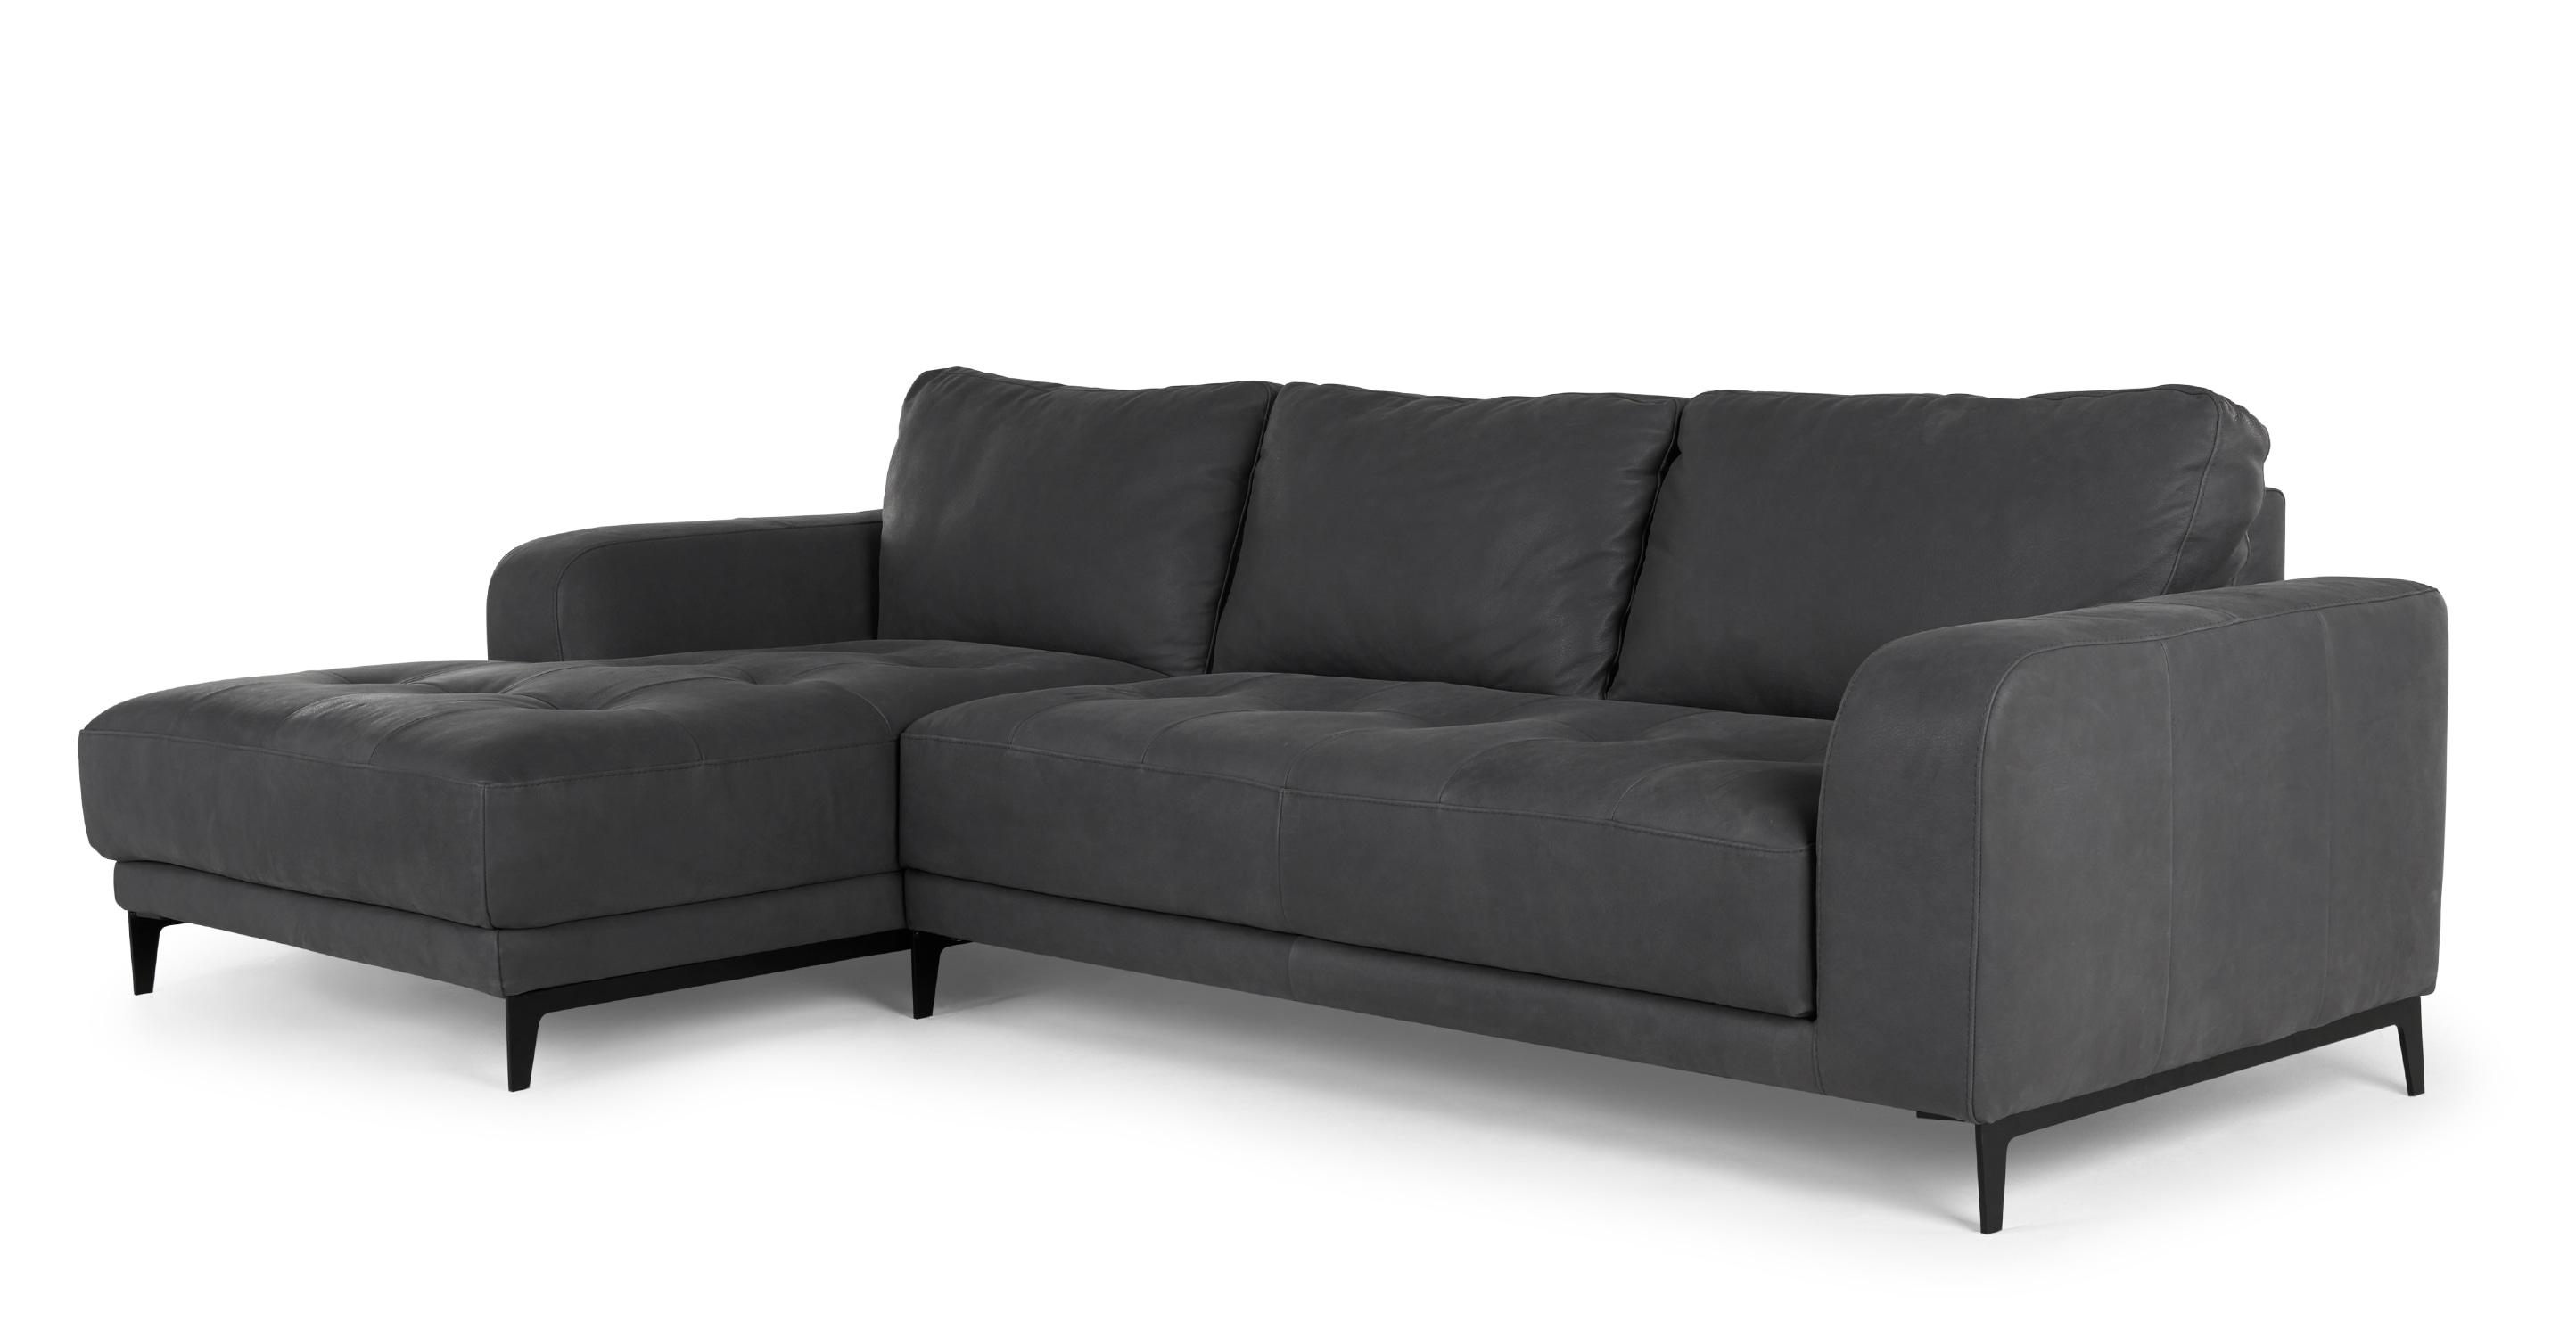 grey leather corner sofa uk extra firm sectional luciano left hand facing  sofas etc